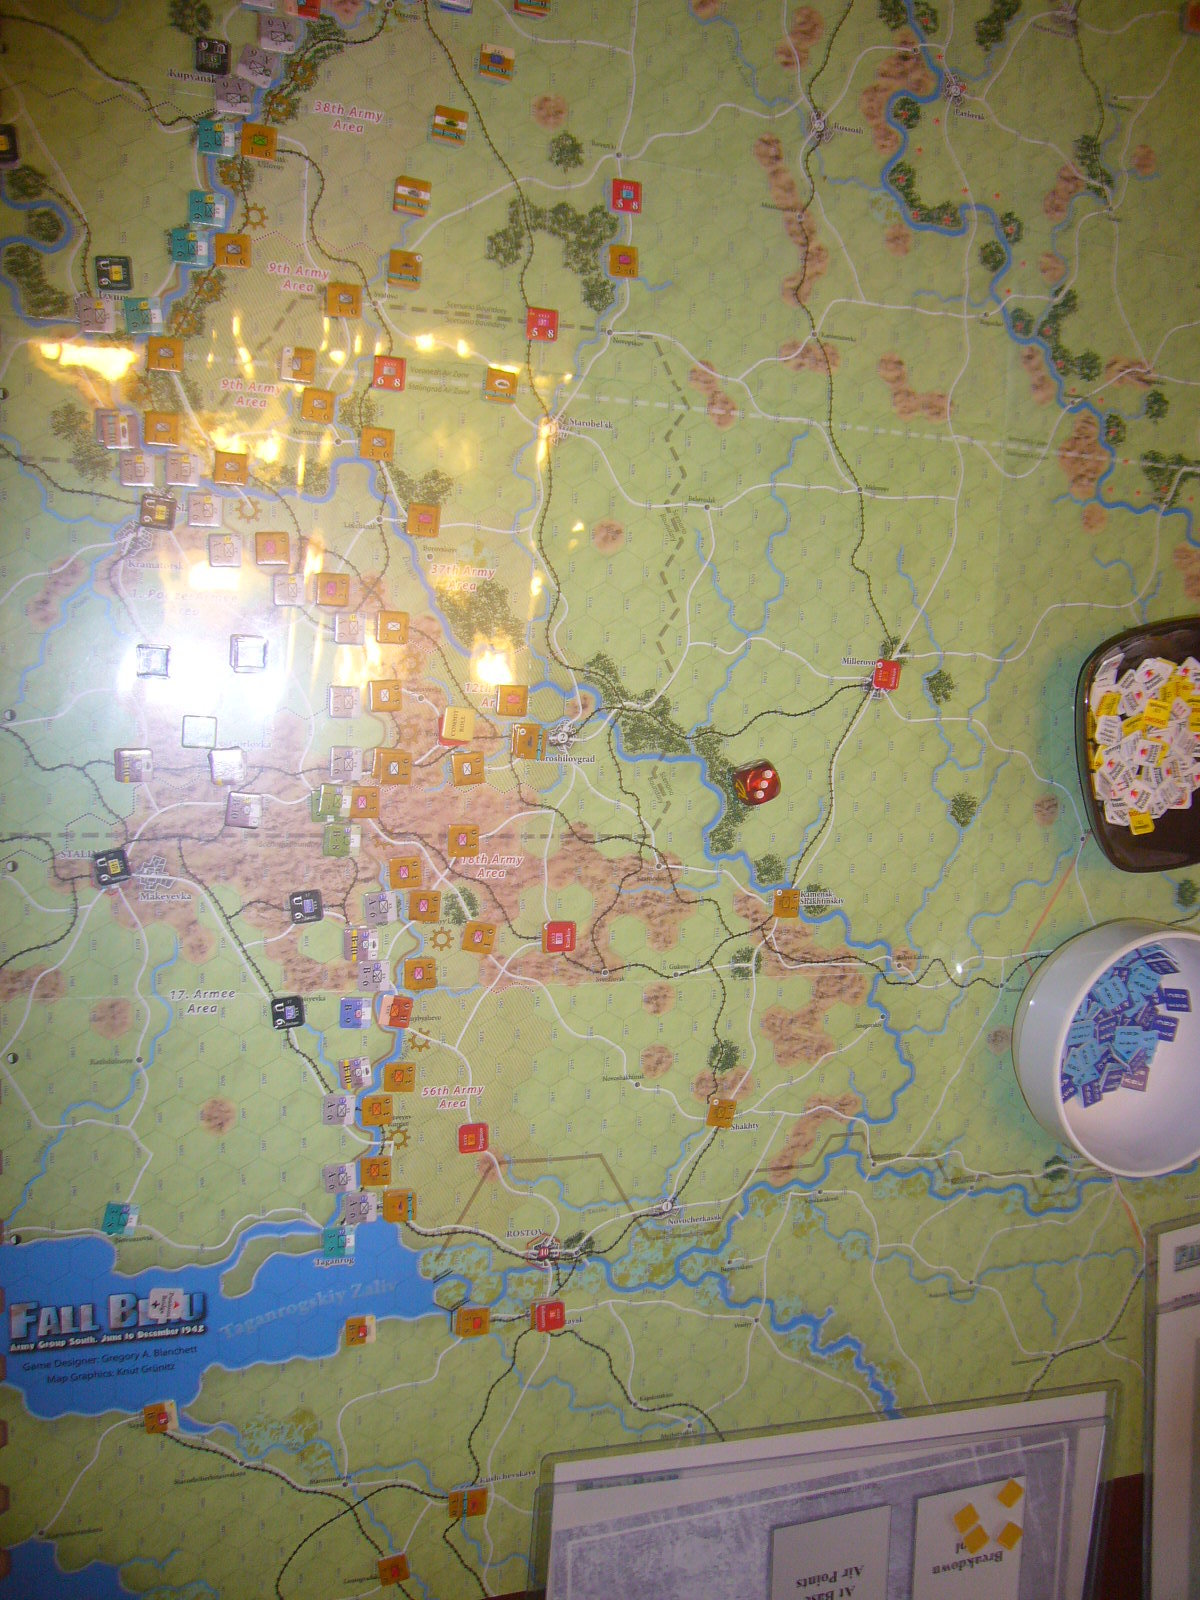 (Compass)FALL BLAU: Army Group South, June to December 1942 青作戦:史実の7月キャンペーンお試し5人戦➋_b0173672_19525013.jpg